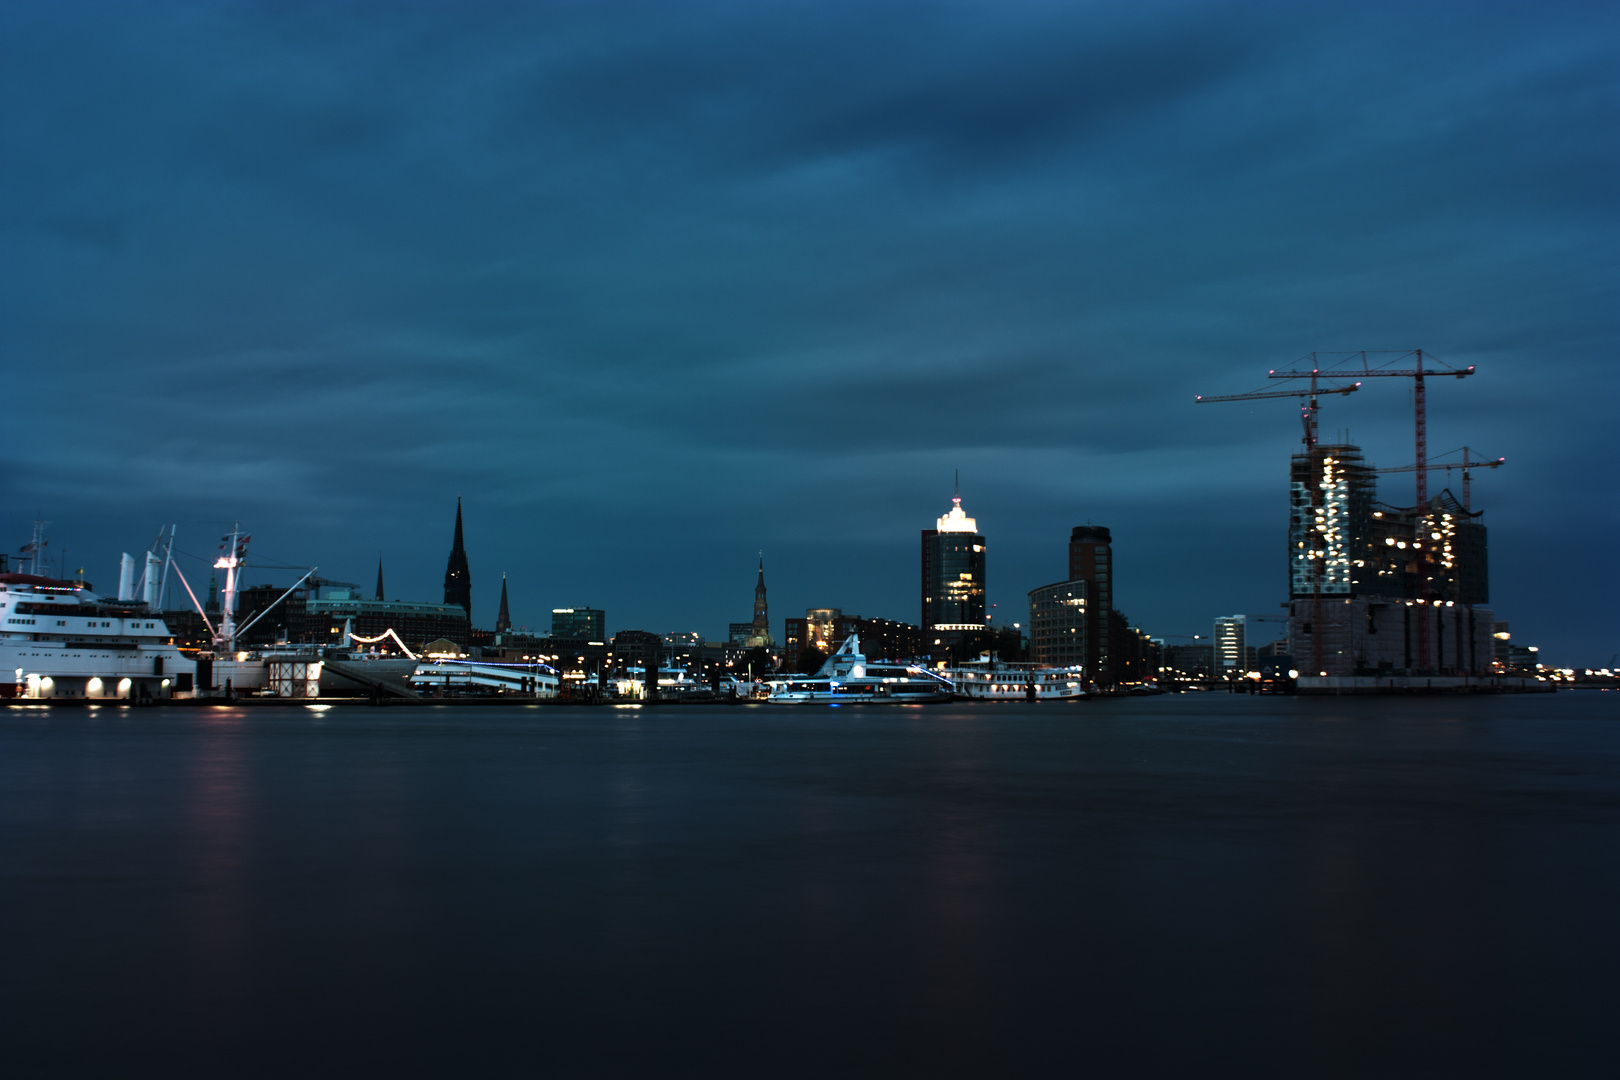 hamburg skyline bei nacht foto bild architektur stadtlandschaft stadtlandschaften bei. Black Bedroom Furniture Sets. Home Design Ideas